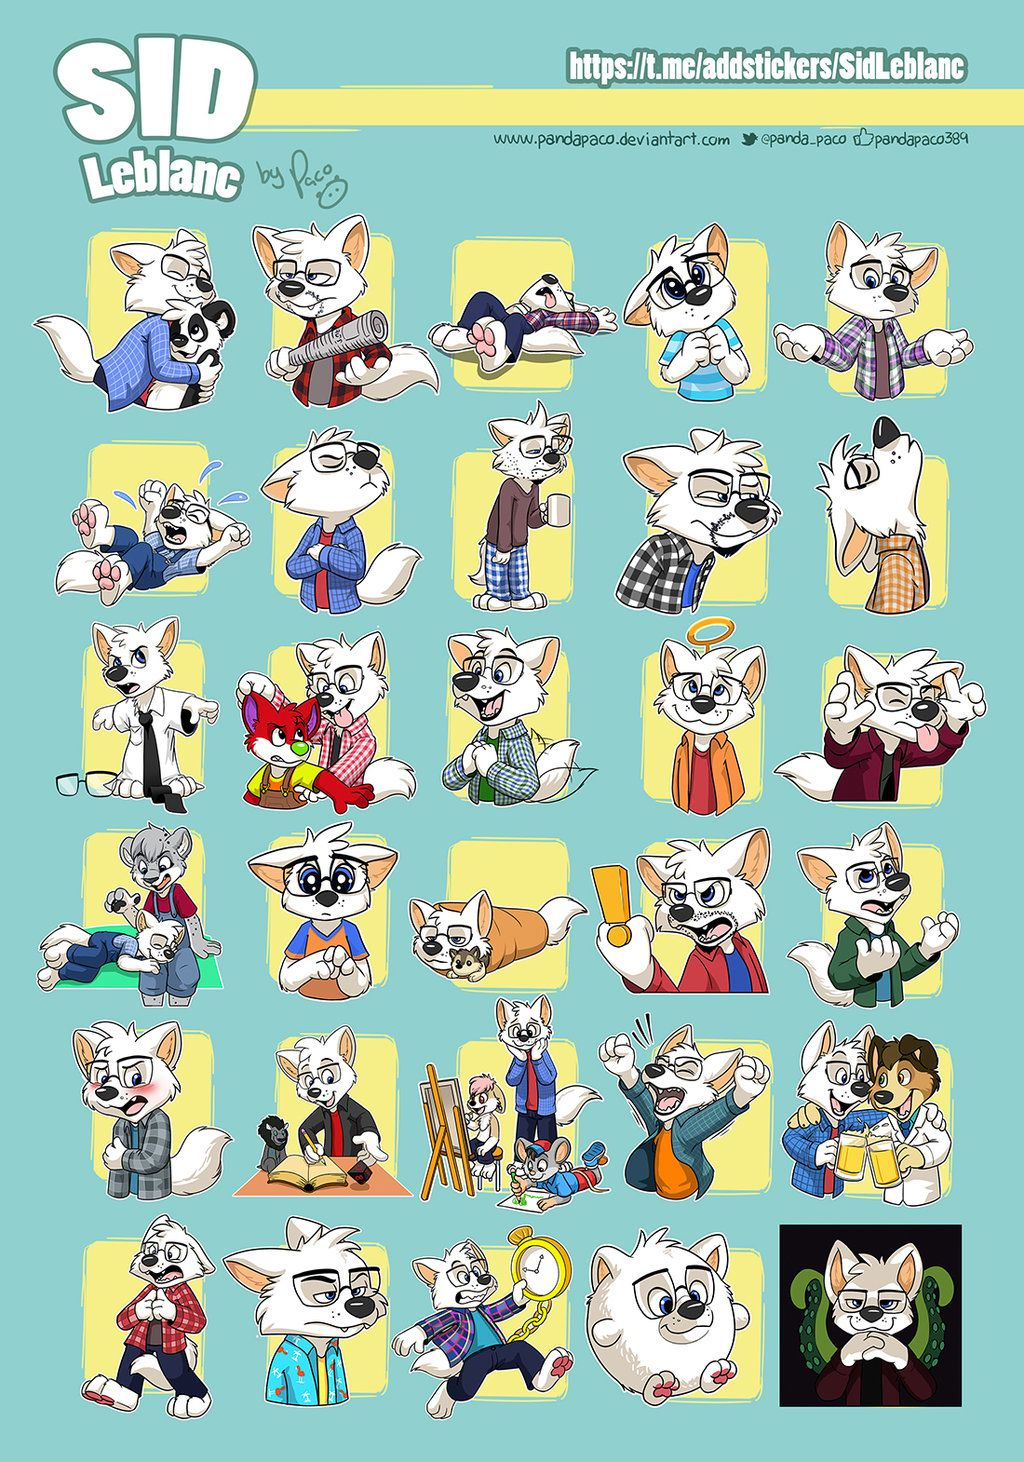 Sid telegram stickers by pandapaco | stickers in 2019